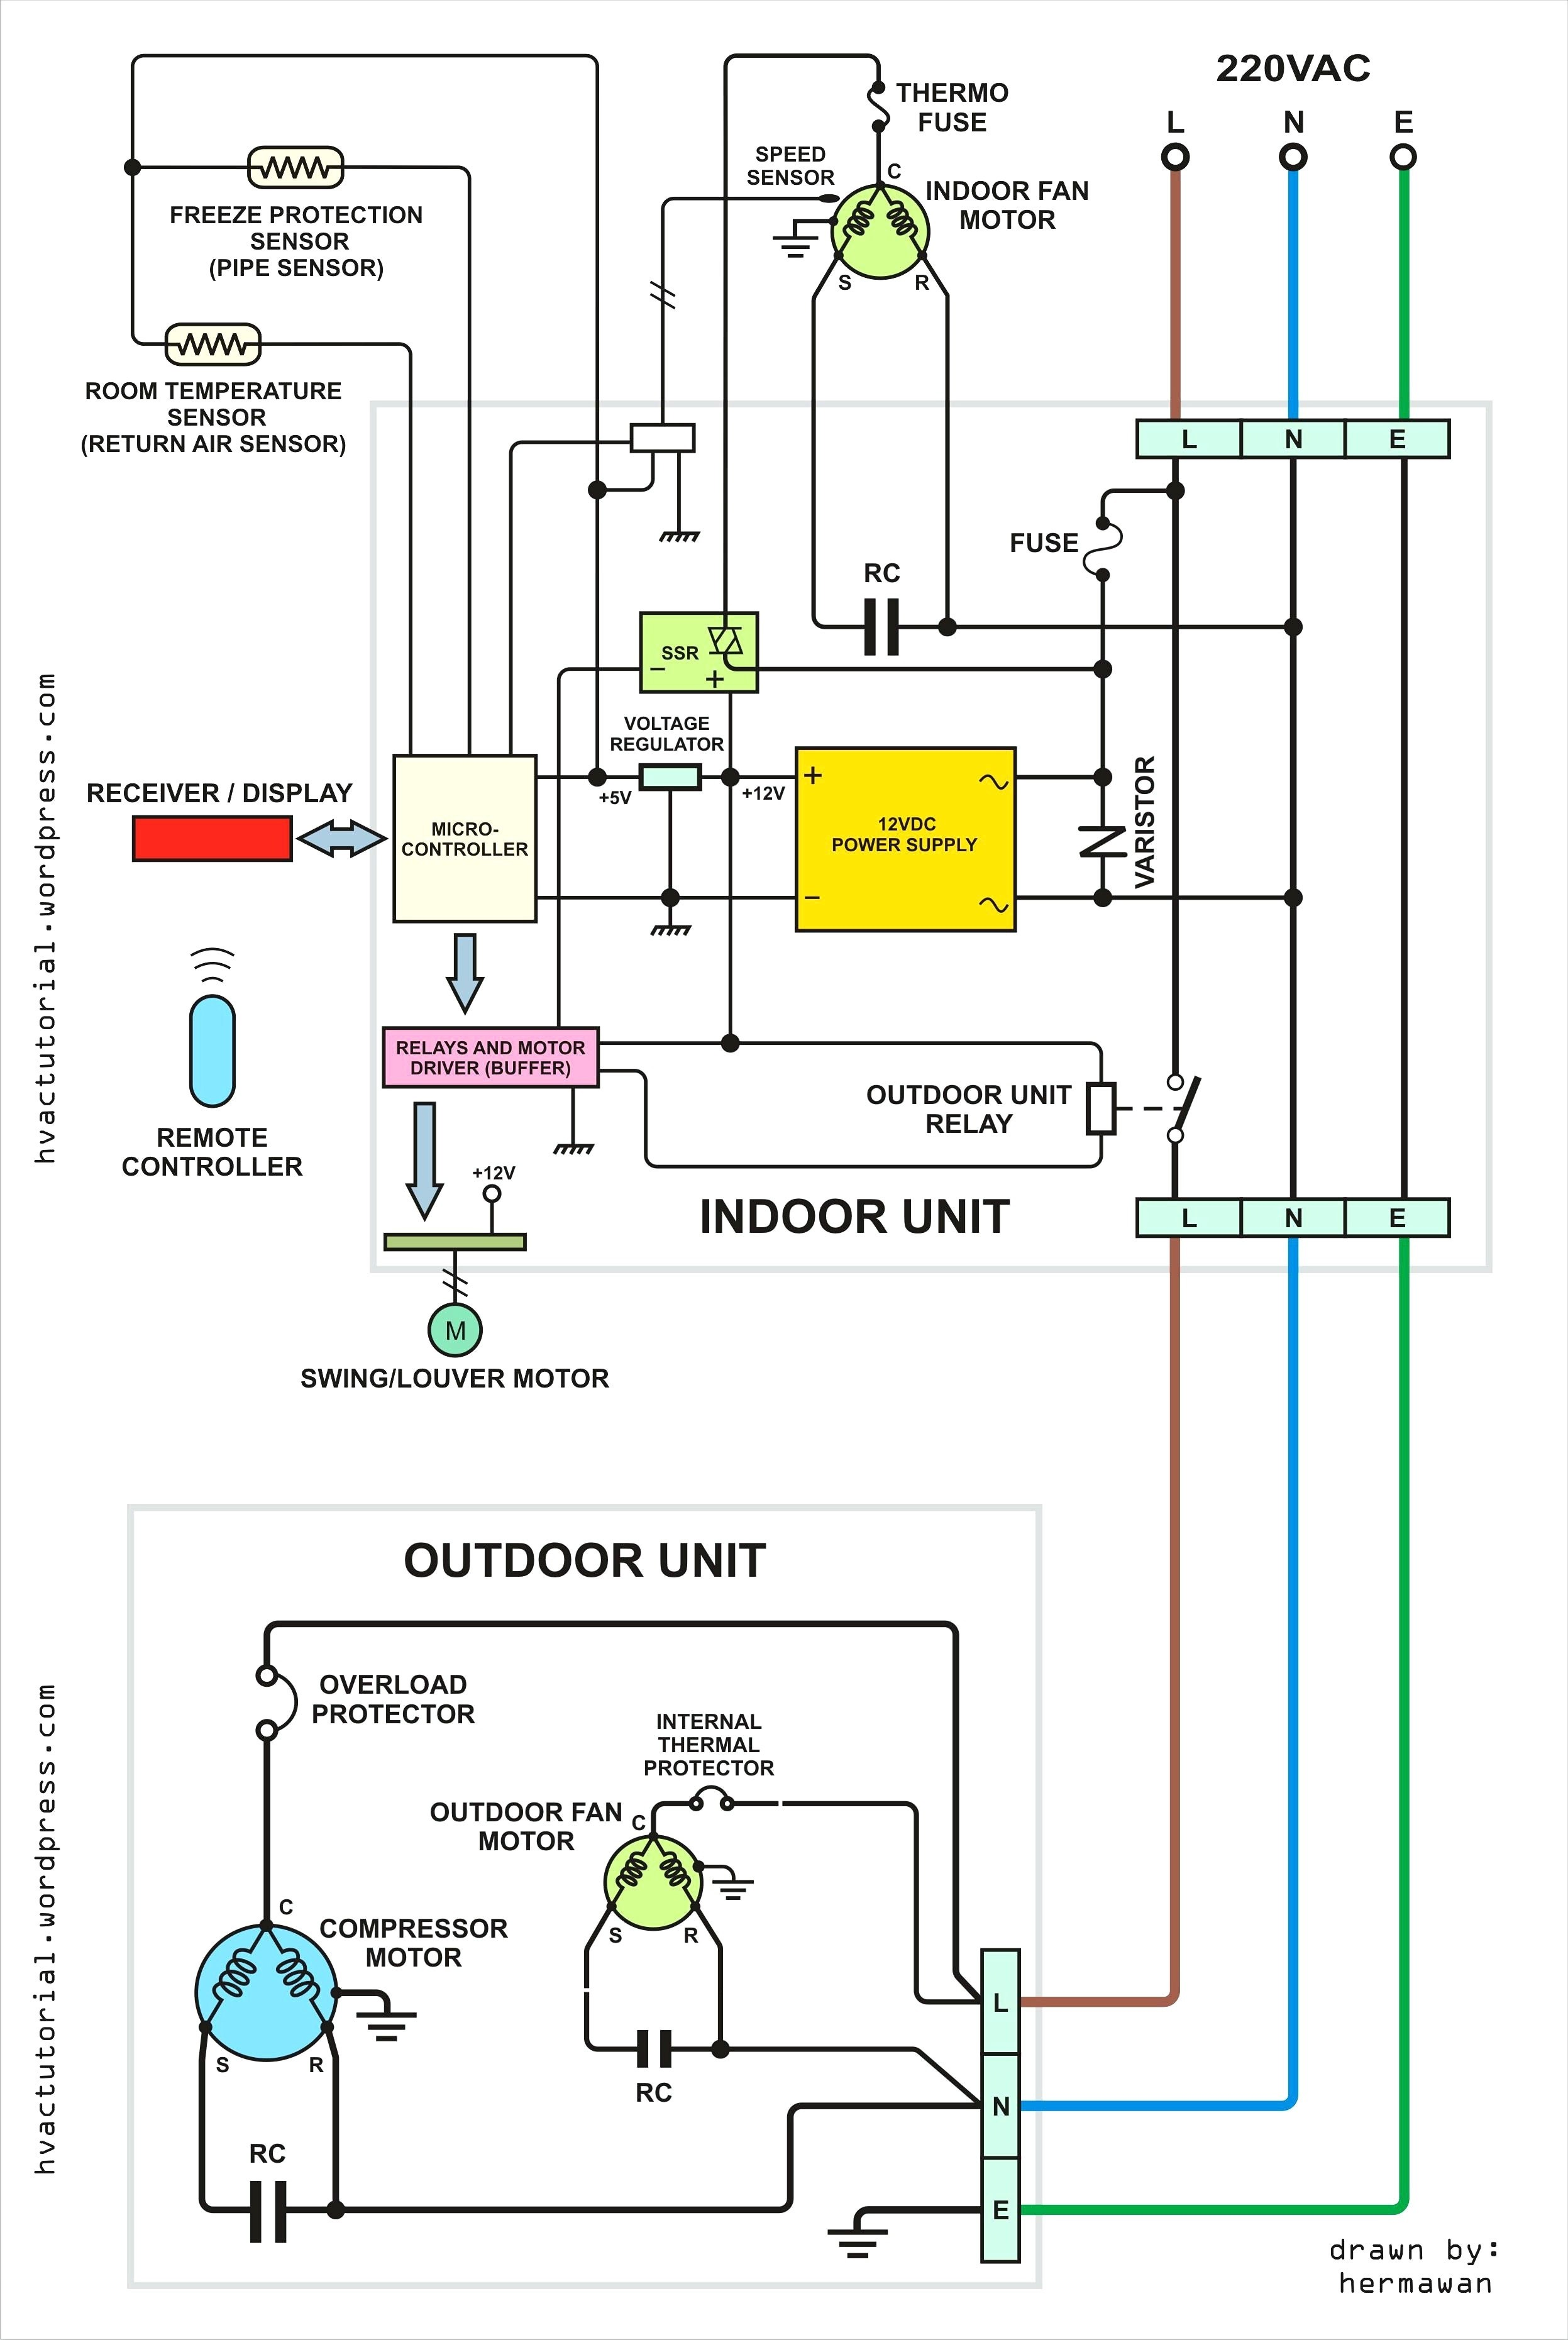 Clothes Dryer Wiring Diagram Altronix Rb5 Wiring Diagram Of Clothes Dryer Wiring Diagram